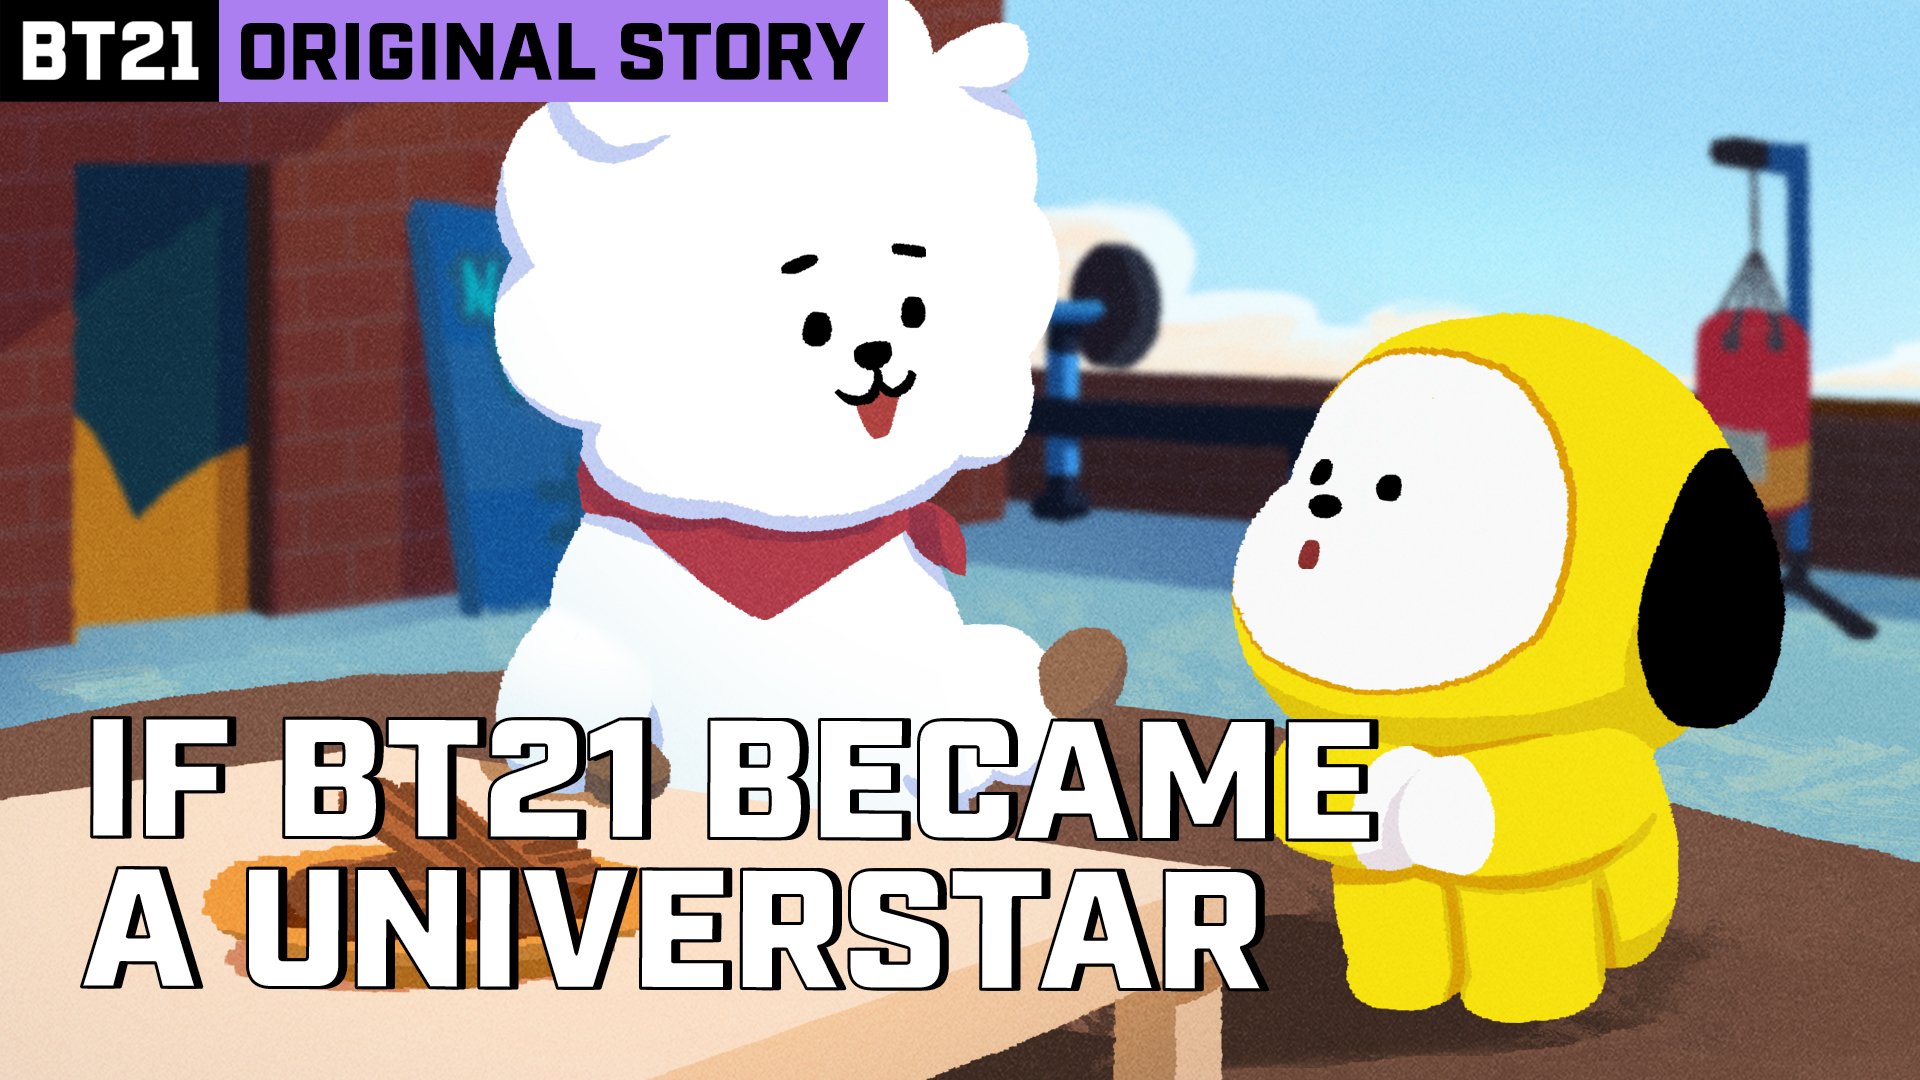 BT21 ORIGINAL STORY EP.05 - BT21's Wishlist